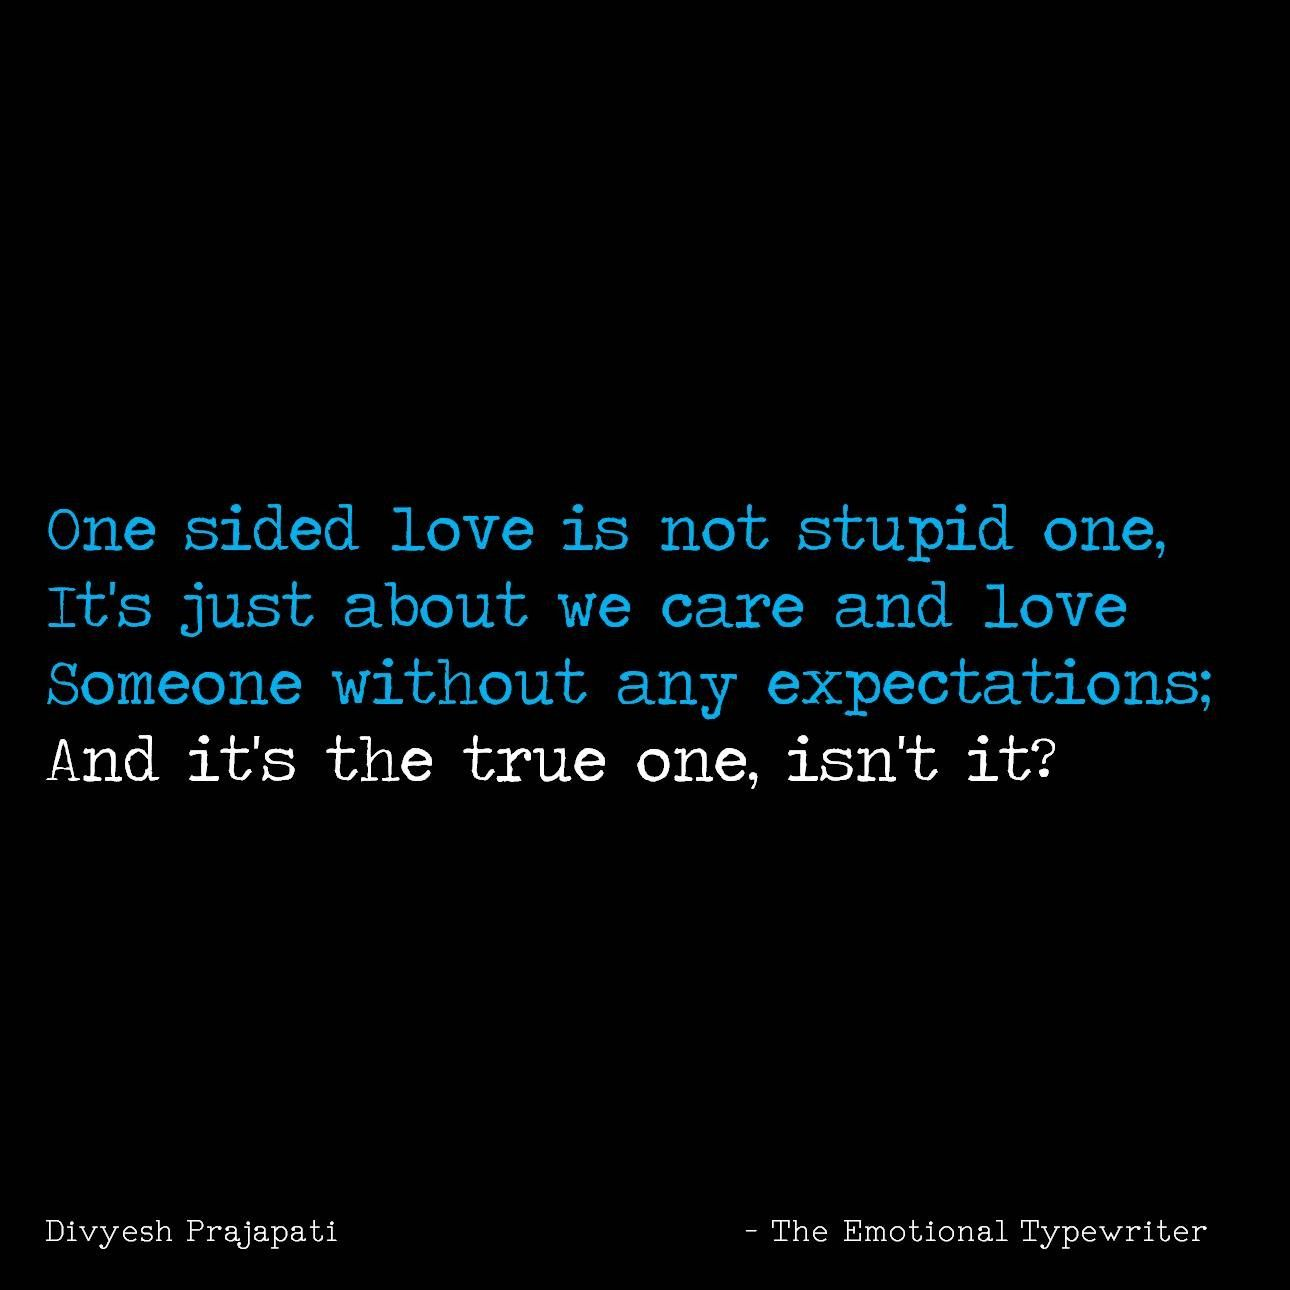 Pin on Relationship and Love Quotes